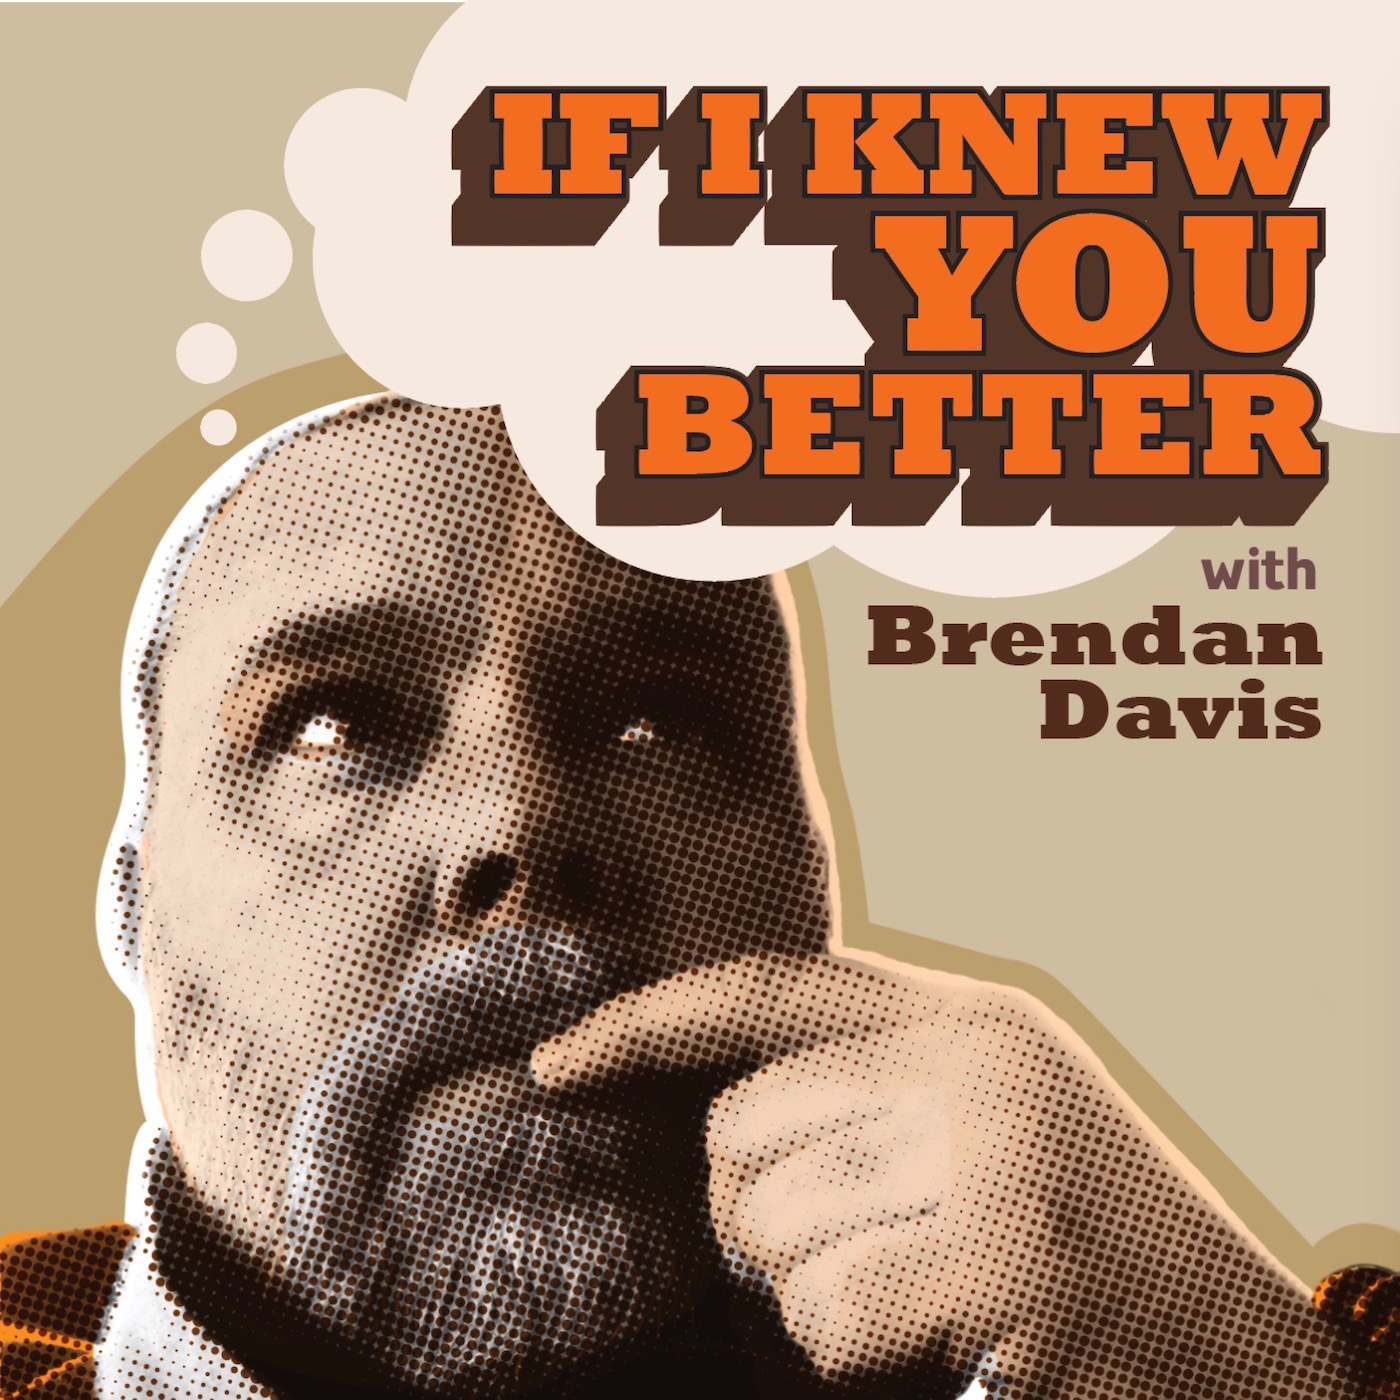 If I Knew You Better show art